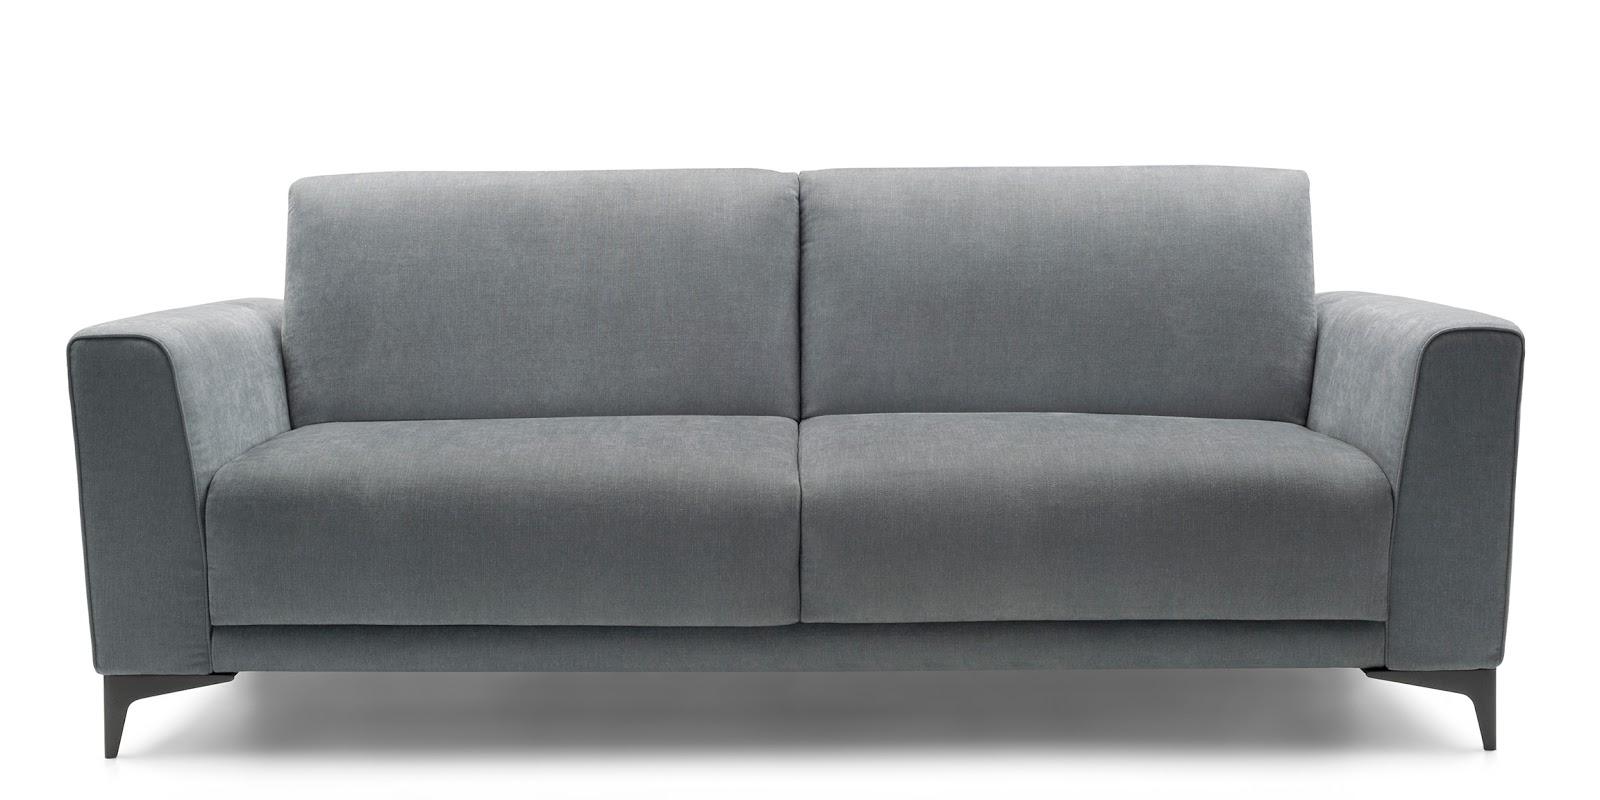 Beds That Look Like Sofas Daybeds That Look Like Sofas 59 With Thesofa